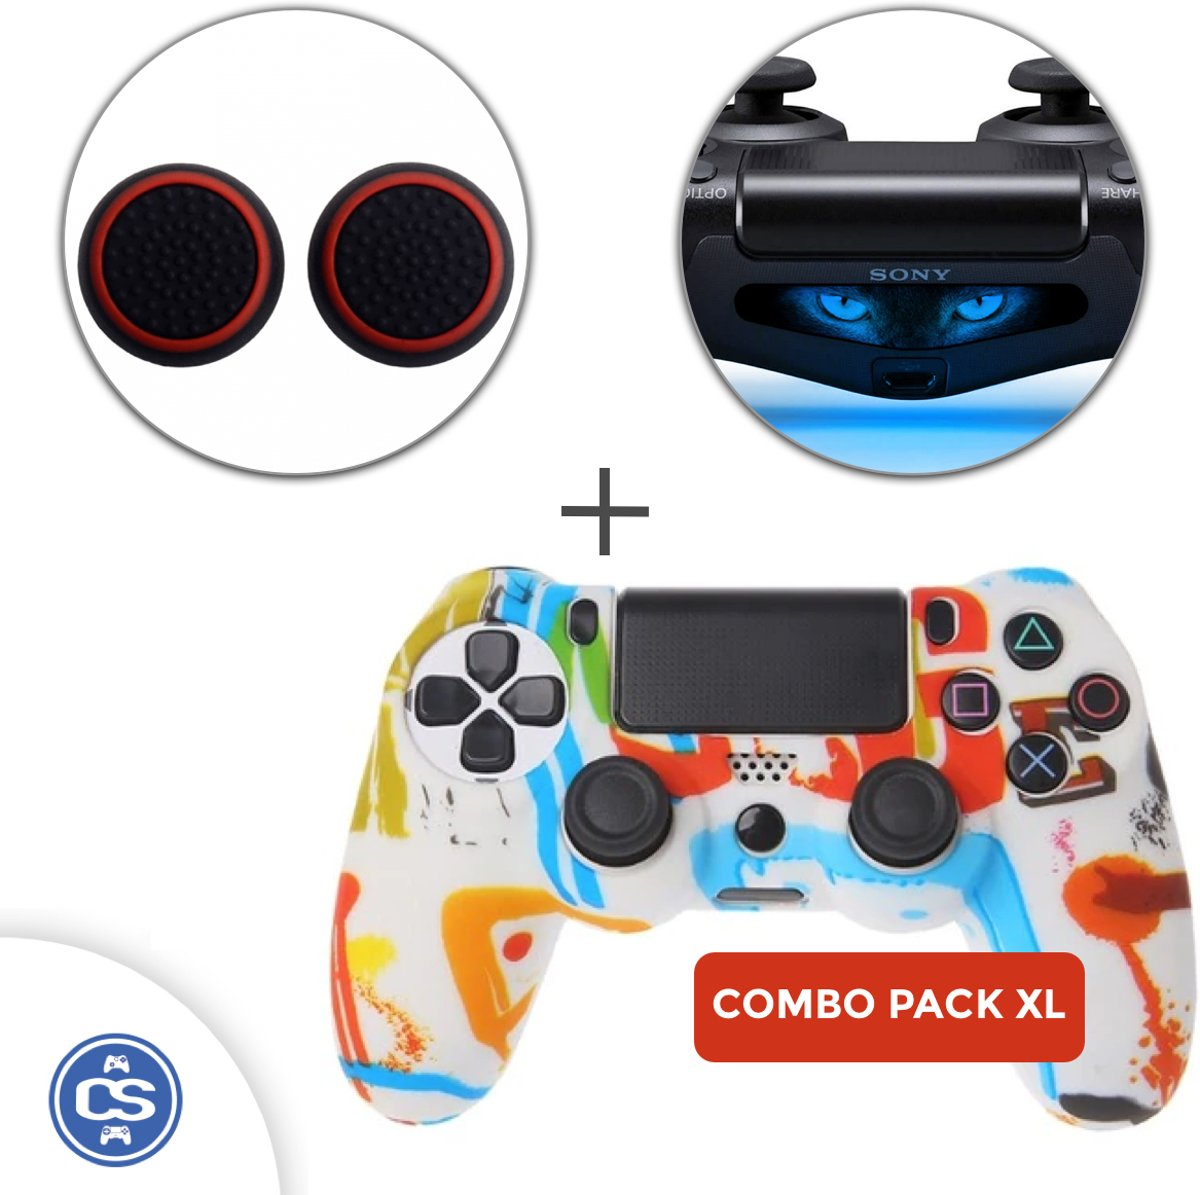 Splash Siliconen Beschermhoes + Thumb Grips + Lightbar Skin voor PS4 Dualshock PlayStation 4 Controller - Softcover Hoes / Case